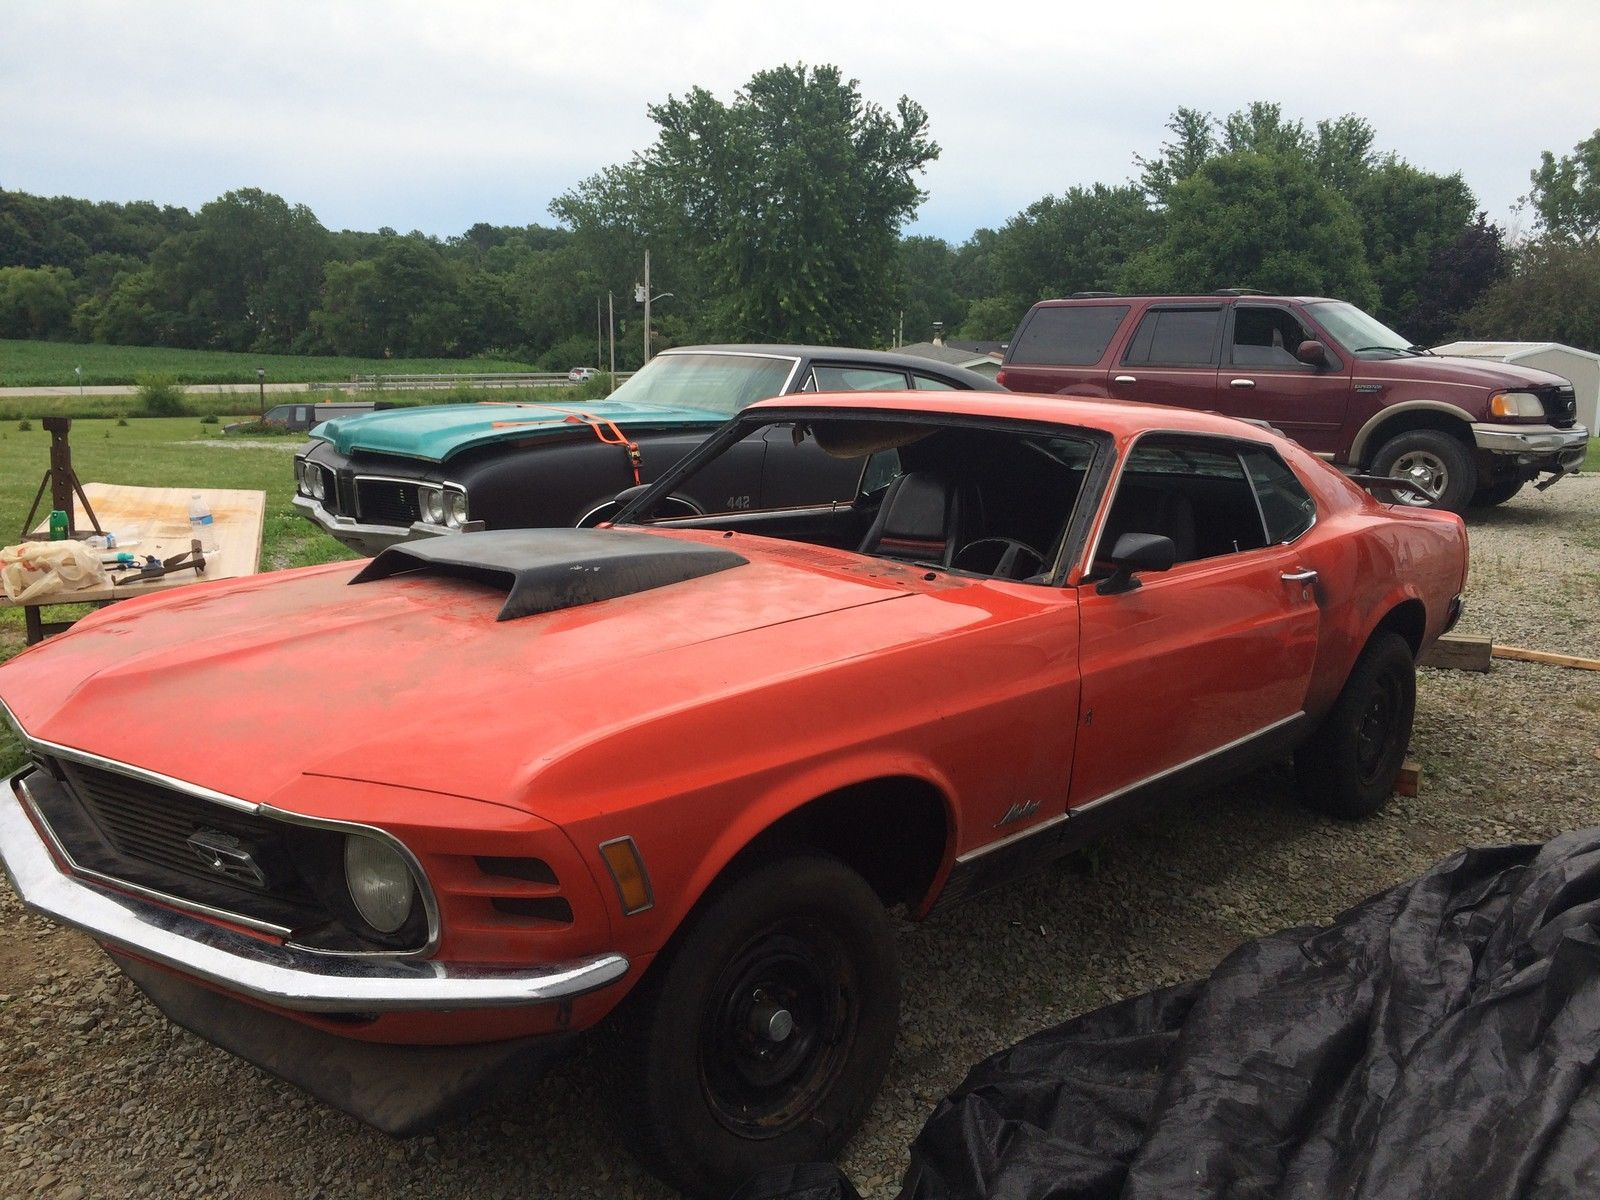 Ford Mustang Mach 1 | eBay | Mustangs Projects | Pinterest ...